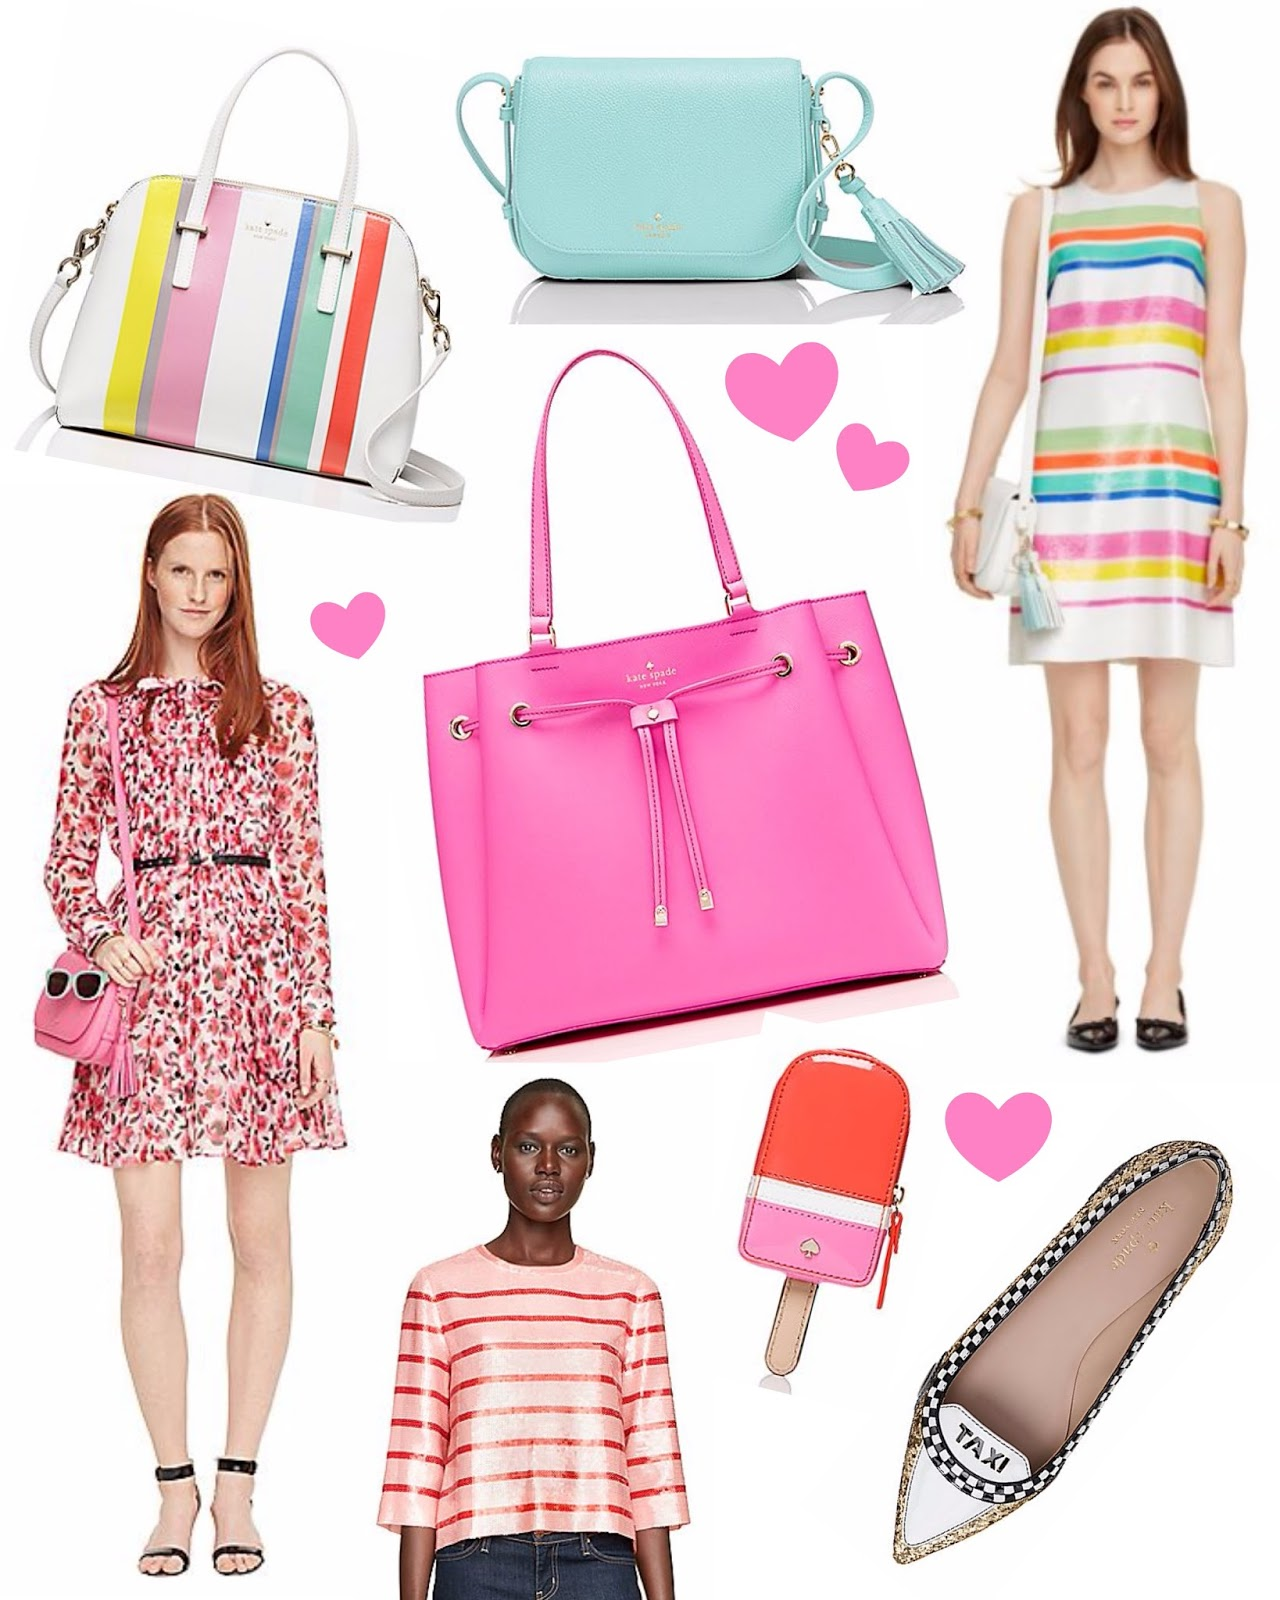 My SS16 picks from Kate Spade